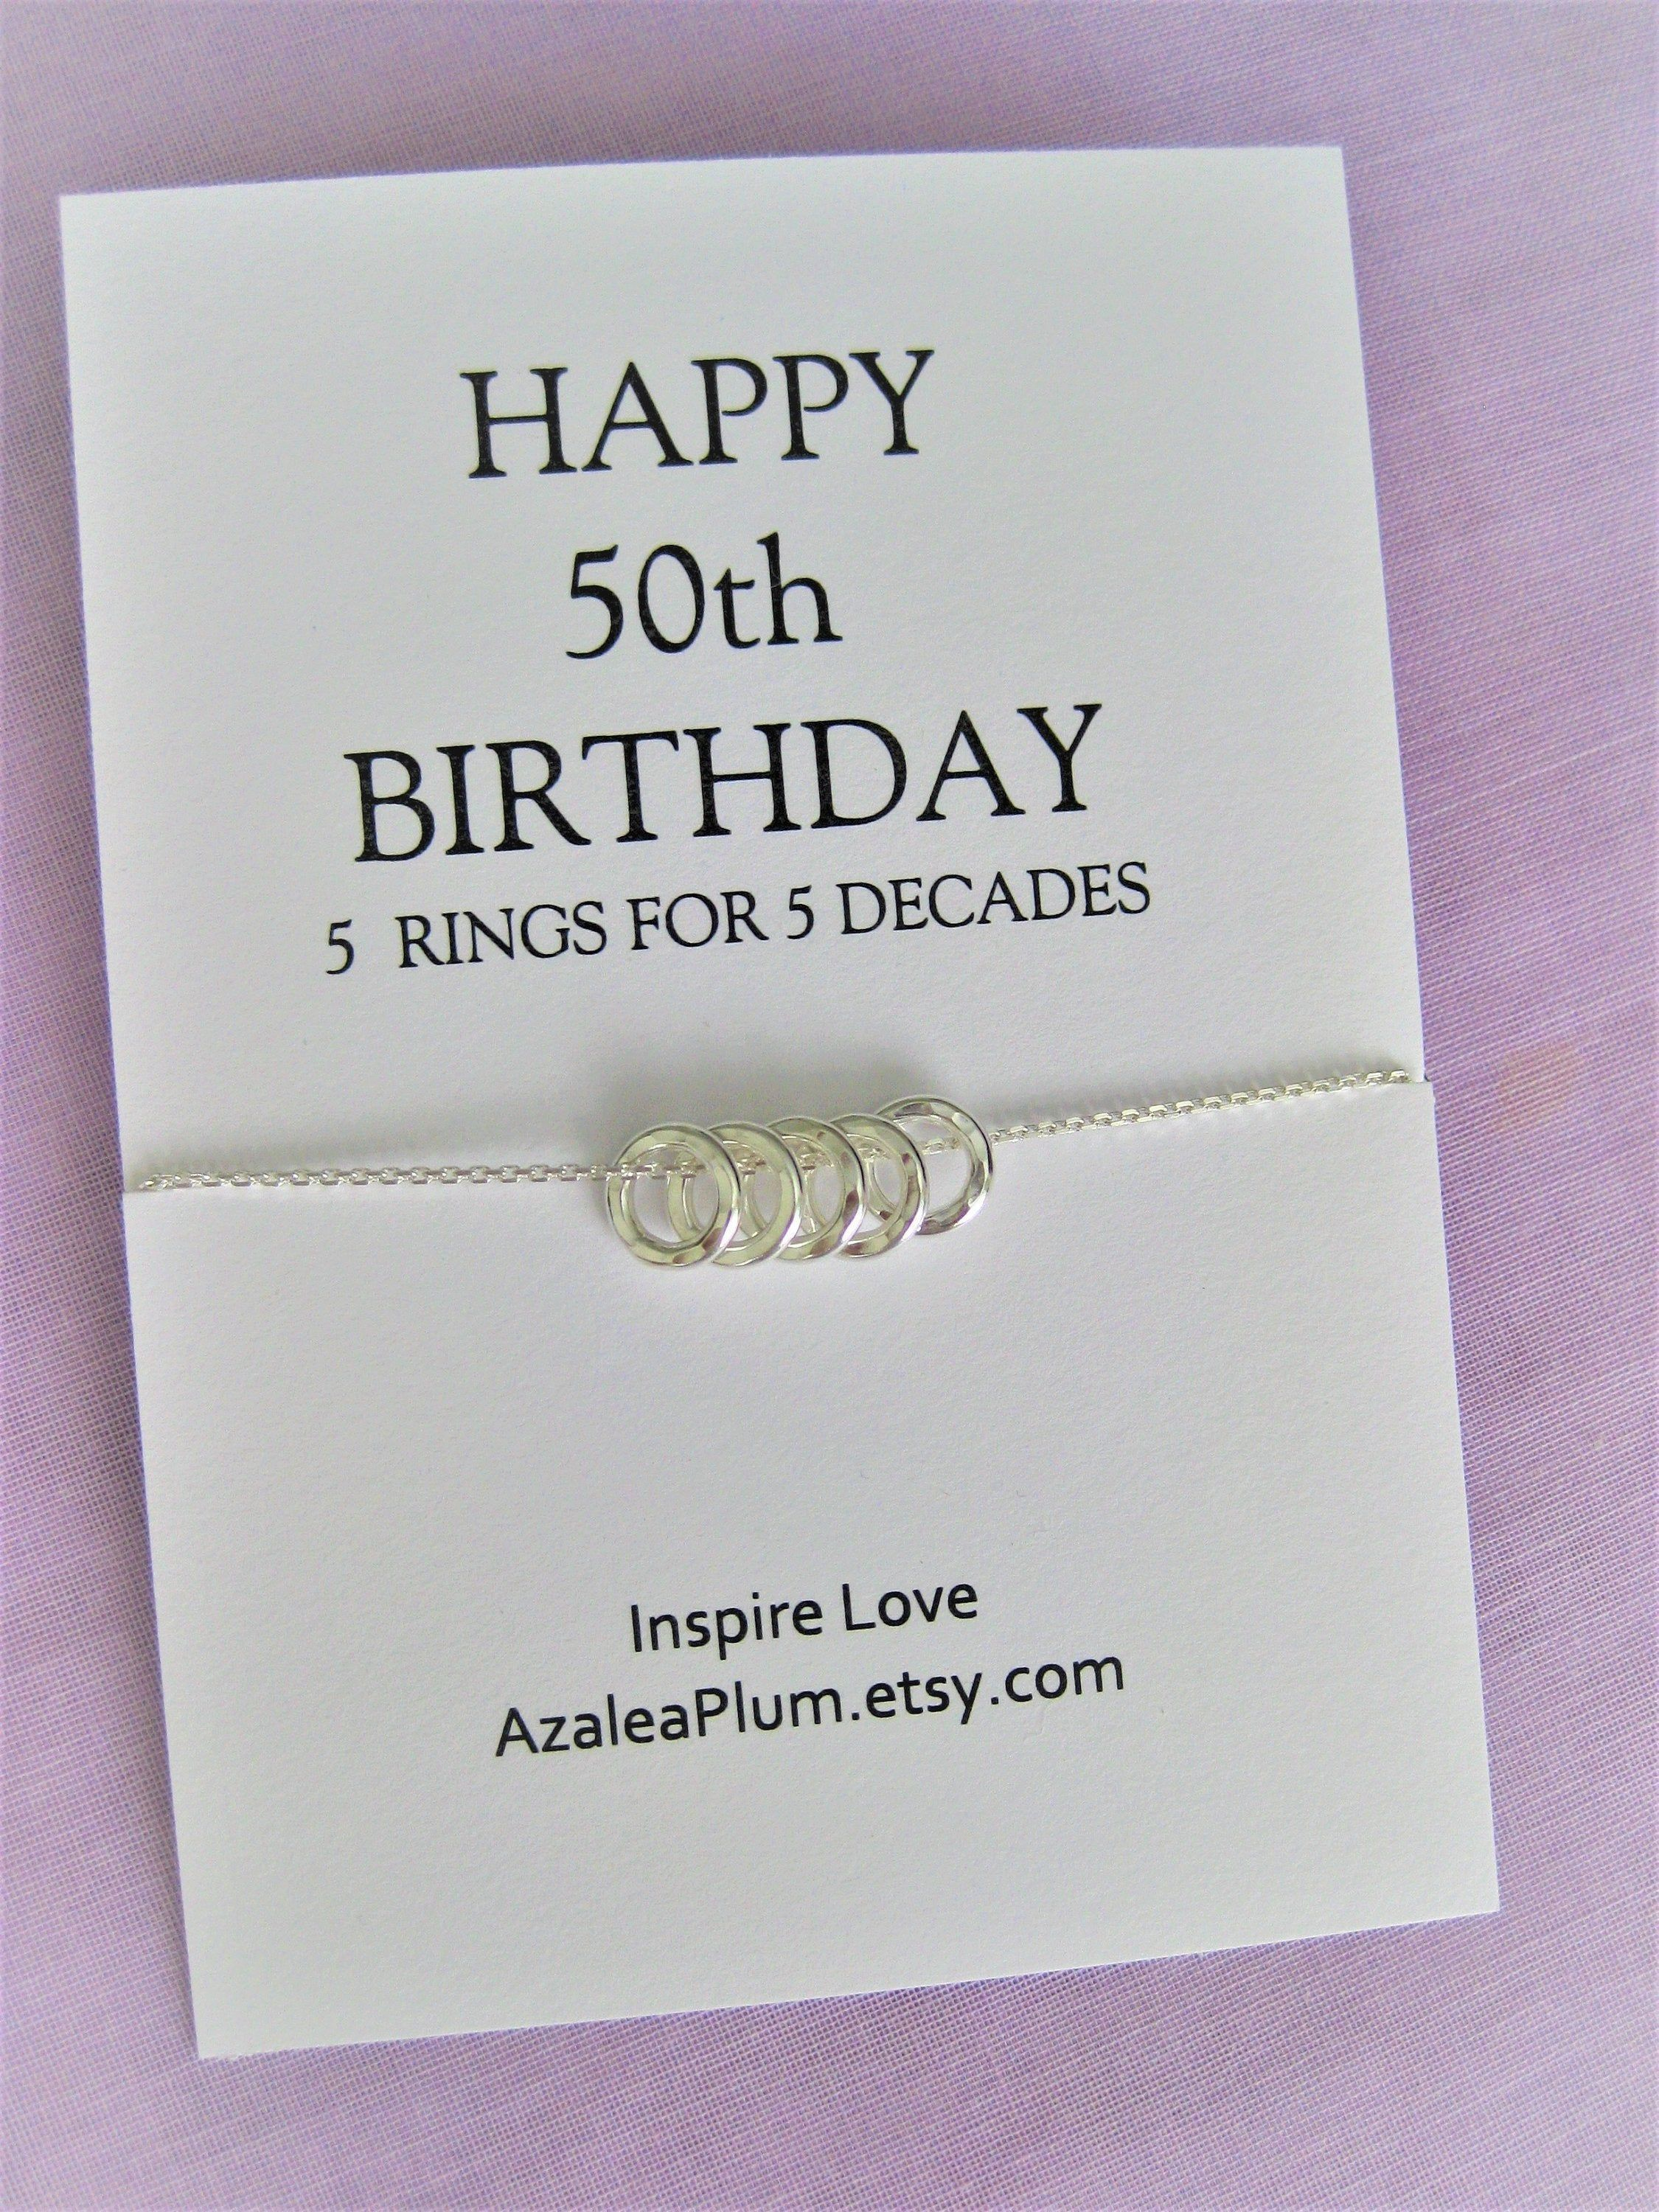 50th Birthday Gift for Women, Solid Sterling Silver Necklace, Sister Gift, 50th Birthday, Friend Gift, Gift for Her, 50th Birthday Necklace - #moms50thbirthday